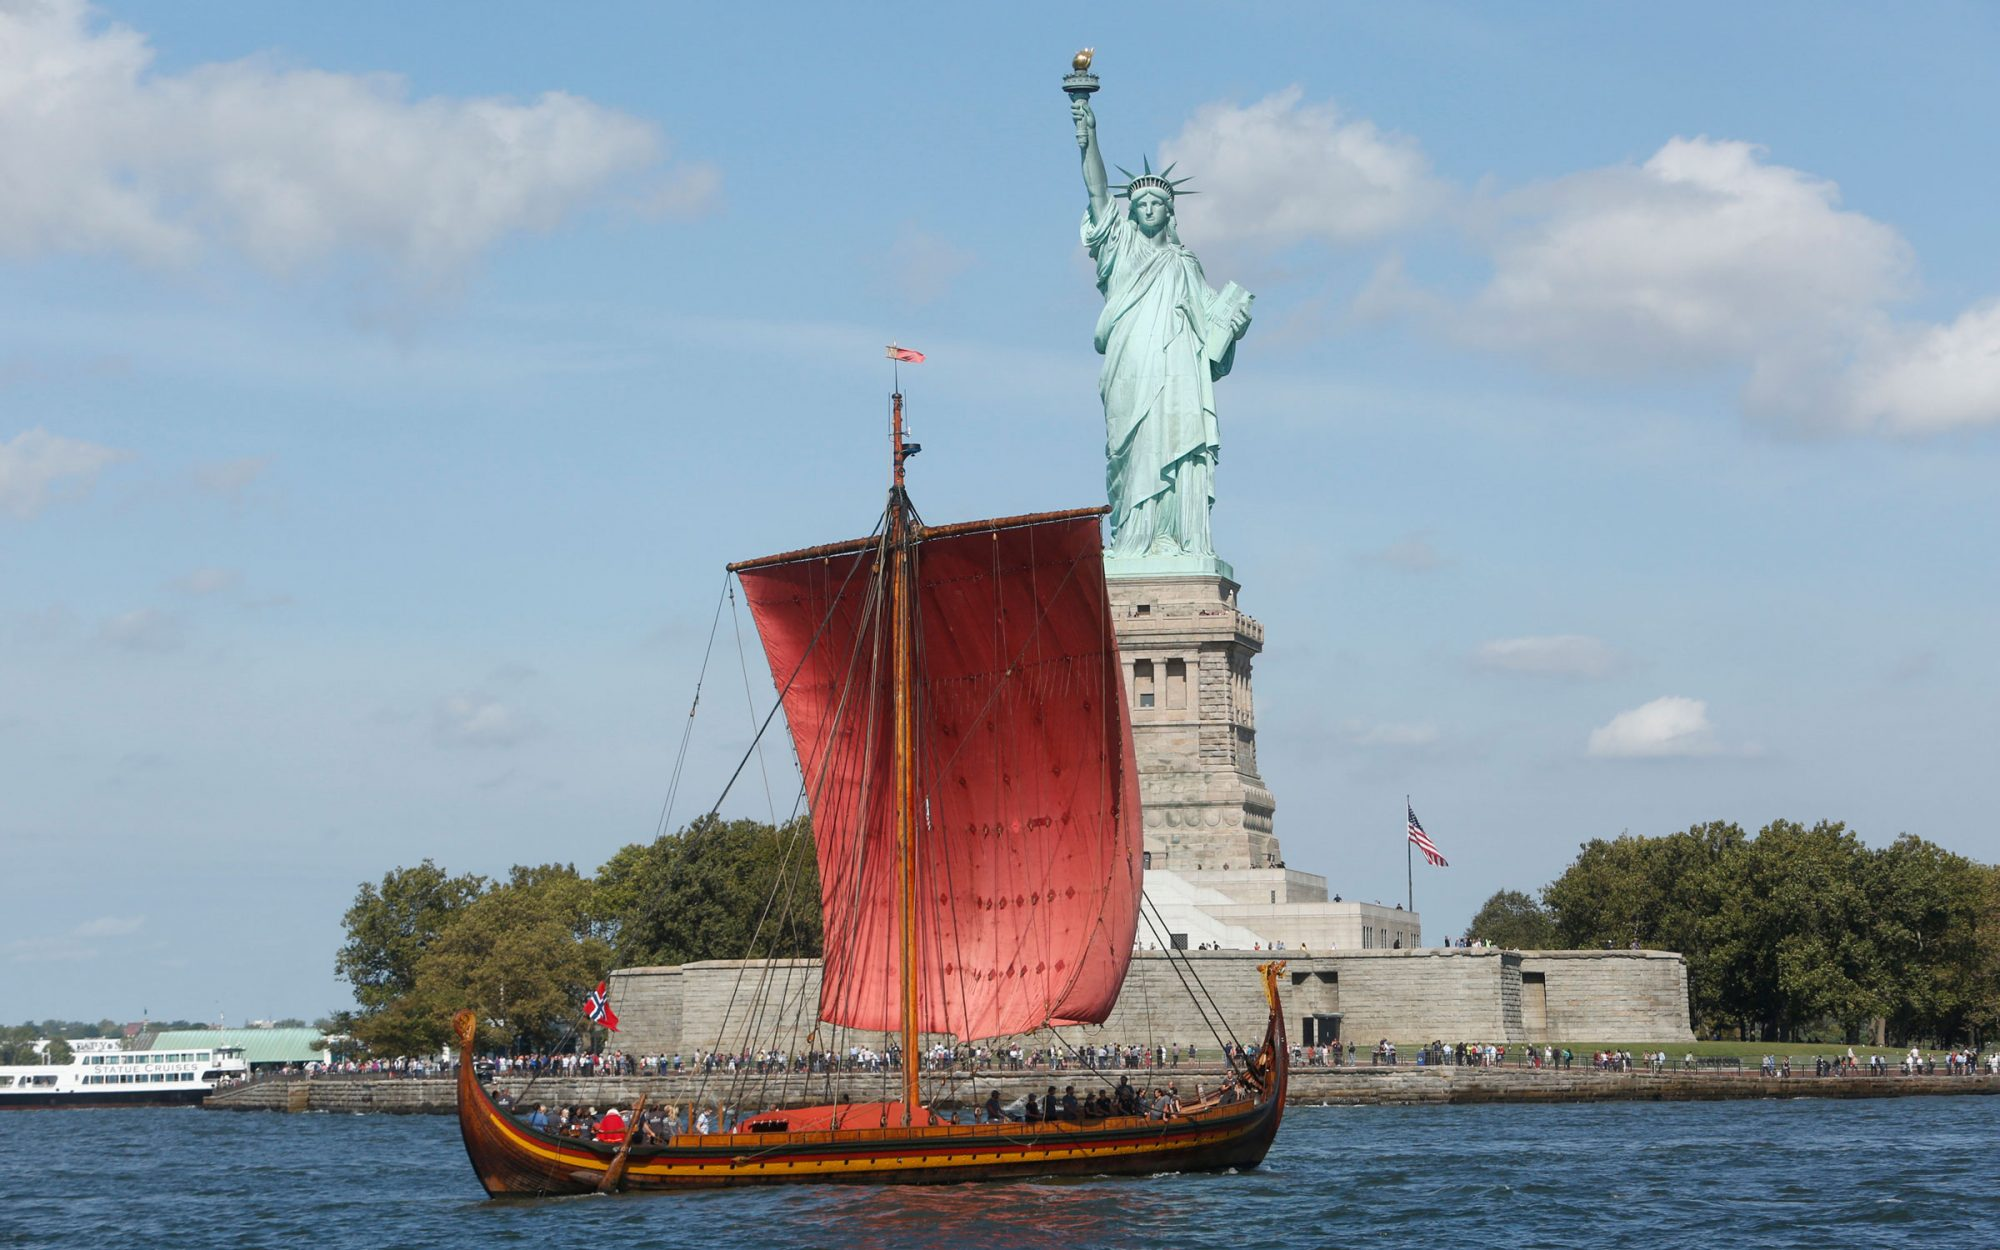 There's A Viking Ship Docked in New York Harbor